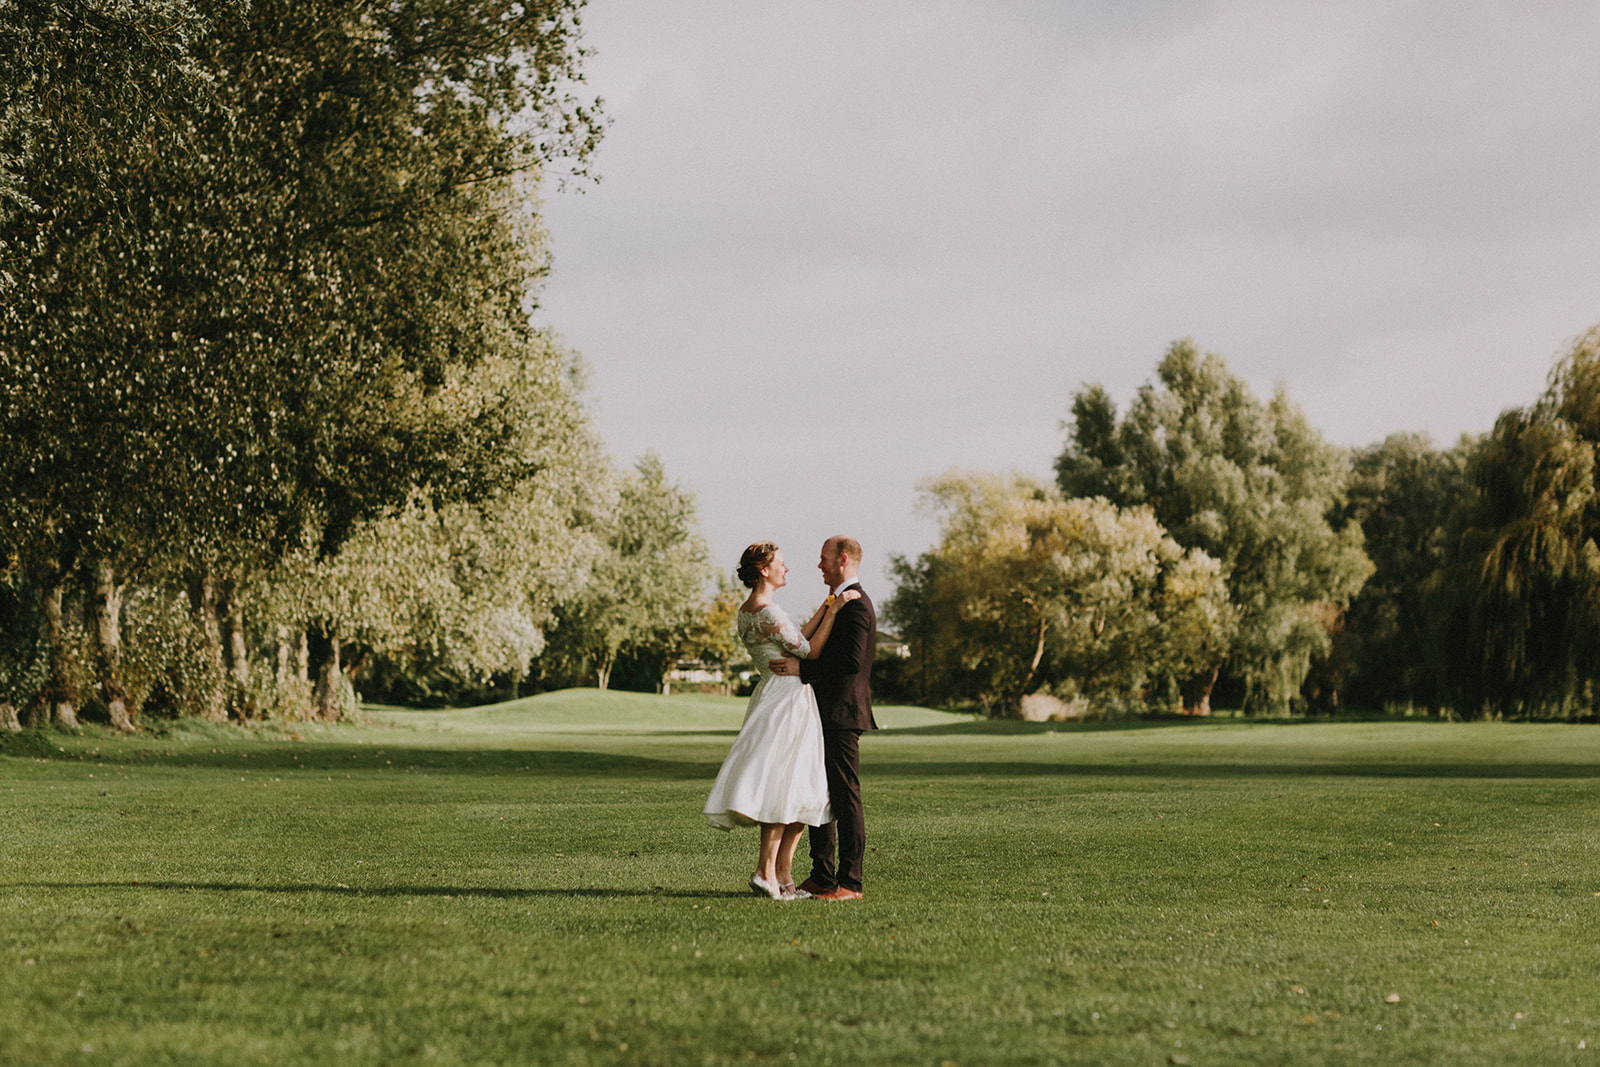 Newly married couple embracing on a fairway in the grounds of The Suffolk Golf Course at All Saints Hotel